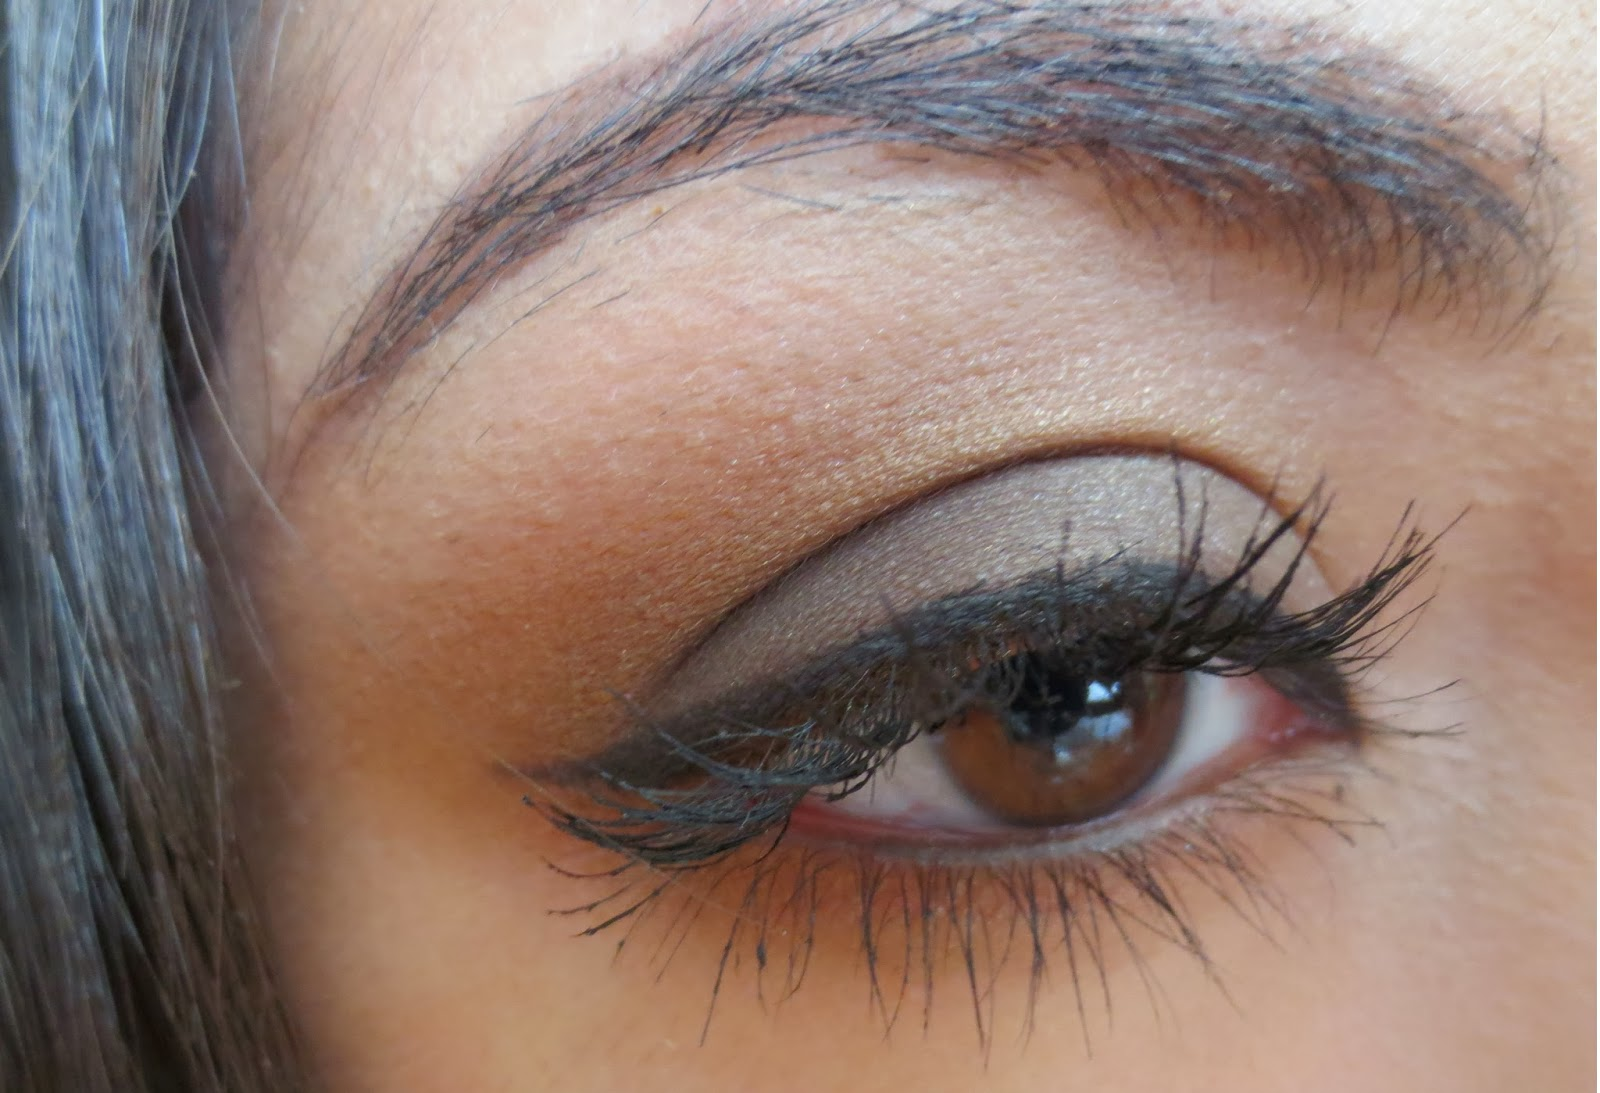 95jessica Fall Eye Makeup Wet N Wild Comfort Zone